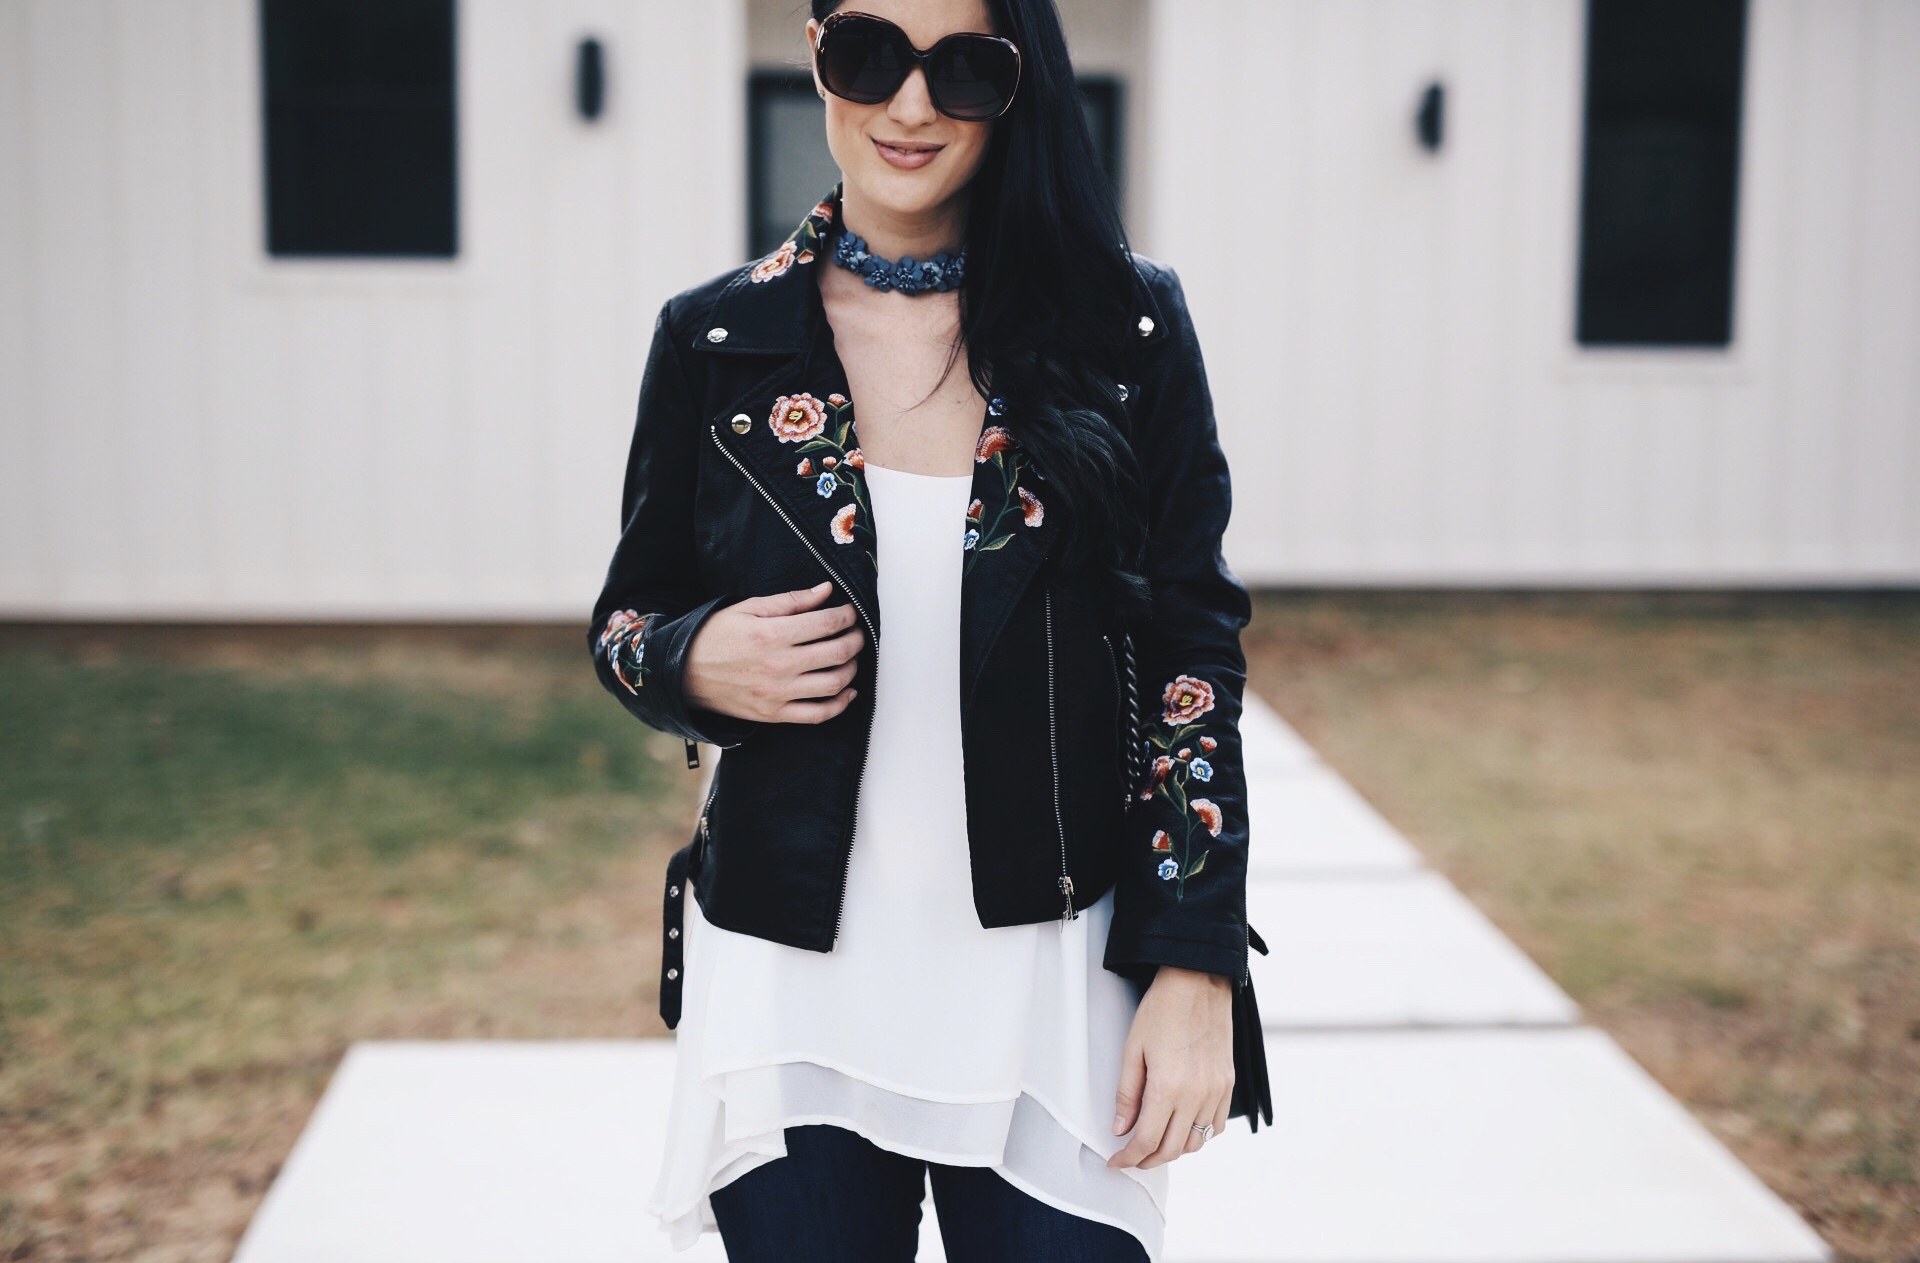 Austin Blogger DTKAustin shares an affordable faux leather, floral embroidered moto jacket from Chicwish under $70! | how to style a faux leather jacket | how to wear a faux leather jacket | affordable faux leather jackets | fall fashion tips | fall outfit ideas | fall style tips | what to wear for fall | cool weather fashion | fashion for fall | style tips for fall | outfit ideas for fall || Dressed to Kill #fallstyle #fauxleather #embroideredjacket